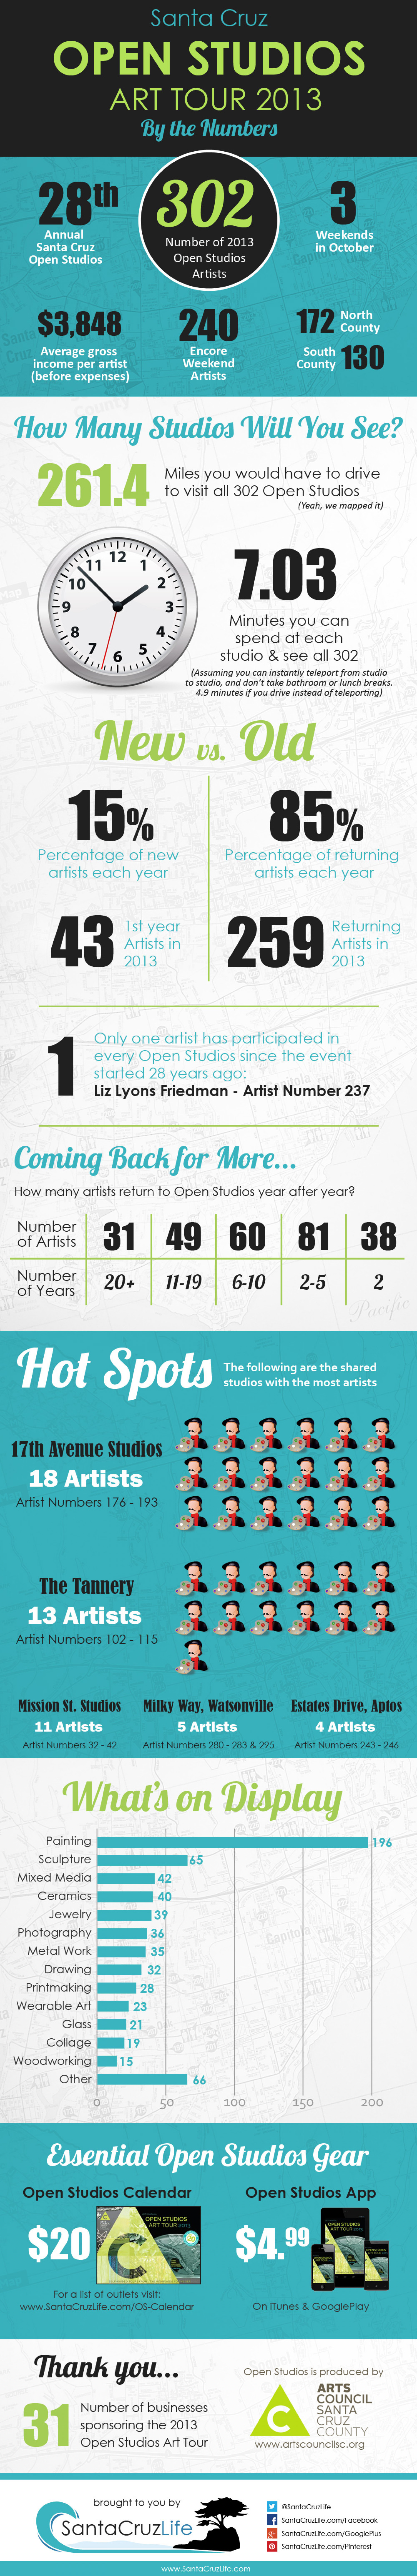 Santa Cruz Open Studios Art Tour 2013 Infographic